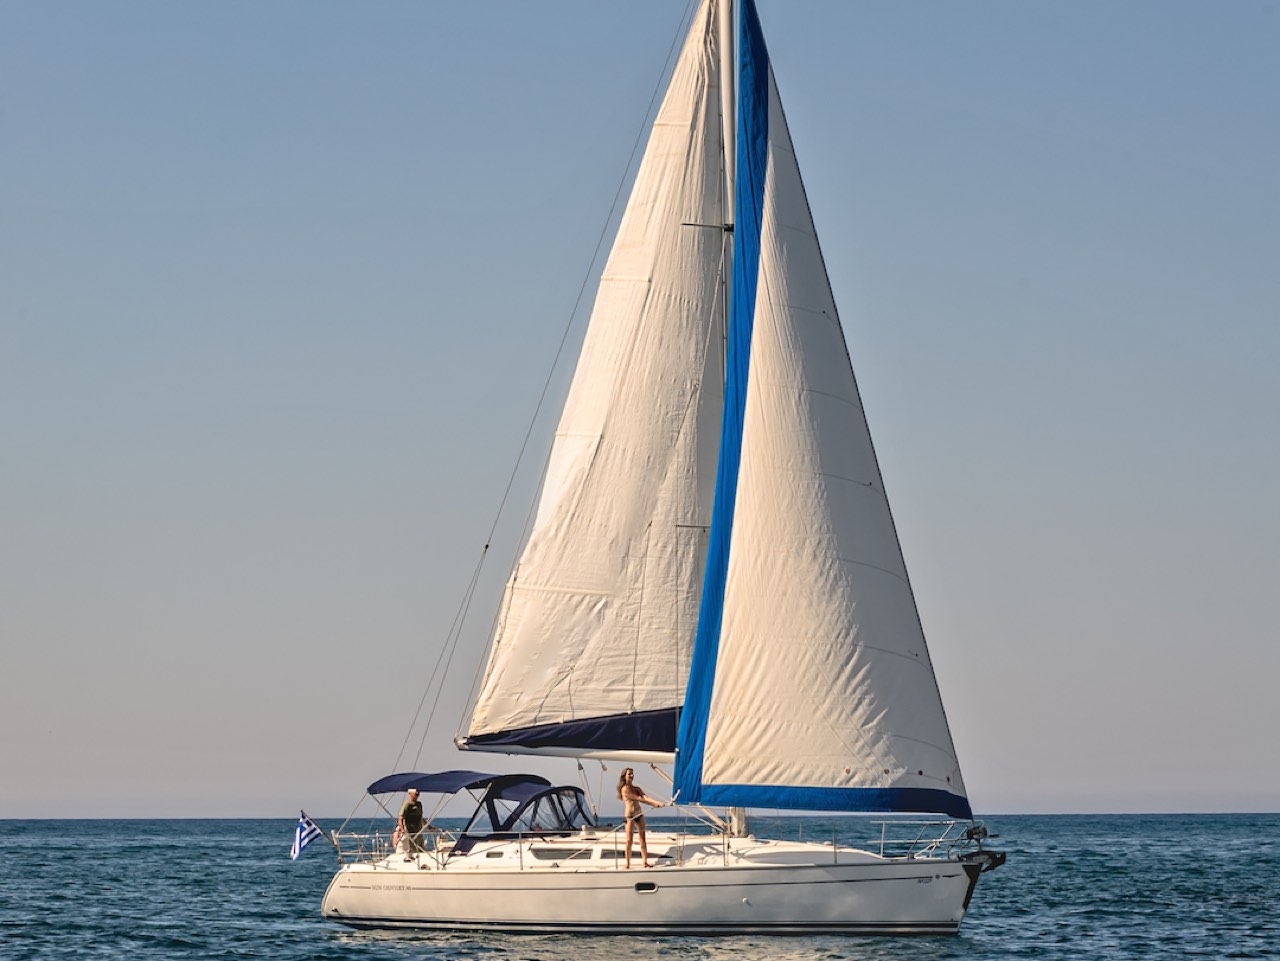 A Day Out Sailing Chania, Short Day Private sailing Tour, sailing chania crete, sailing activities chania, chania activities, best sailing trip chania crete, chania sailing theodorou island, agioi theodoroi island sailing chania, sail fishing summer, sailing in Crete